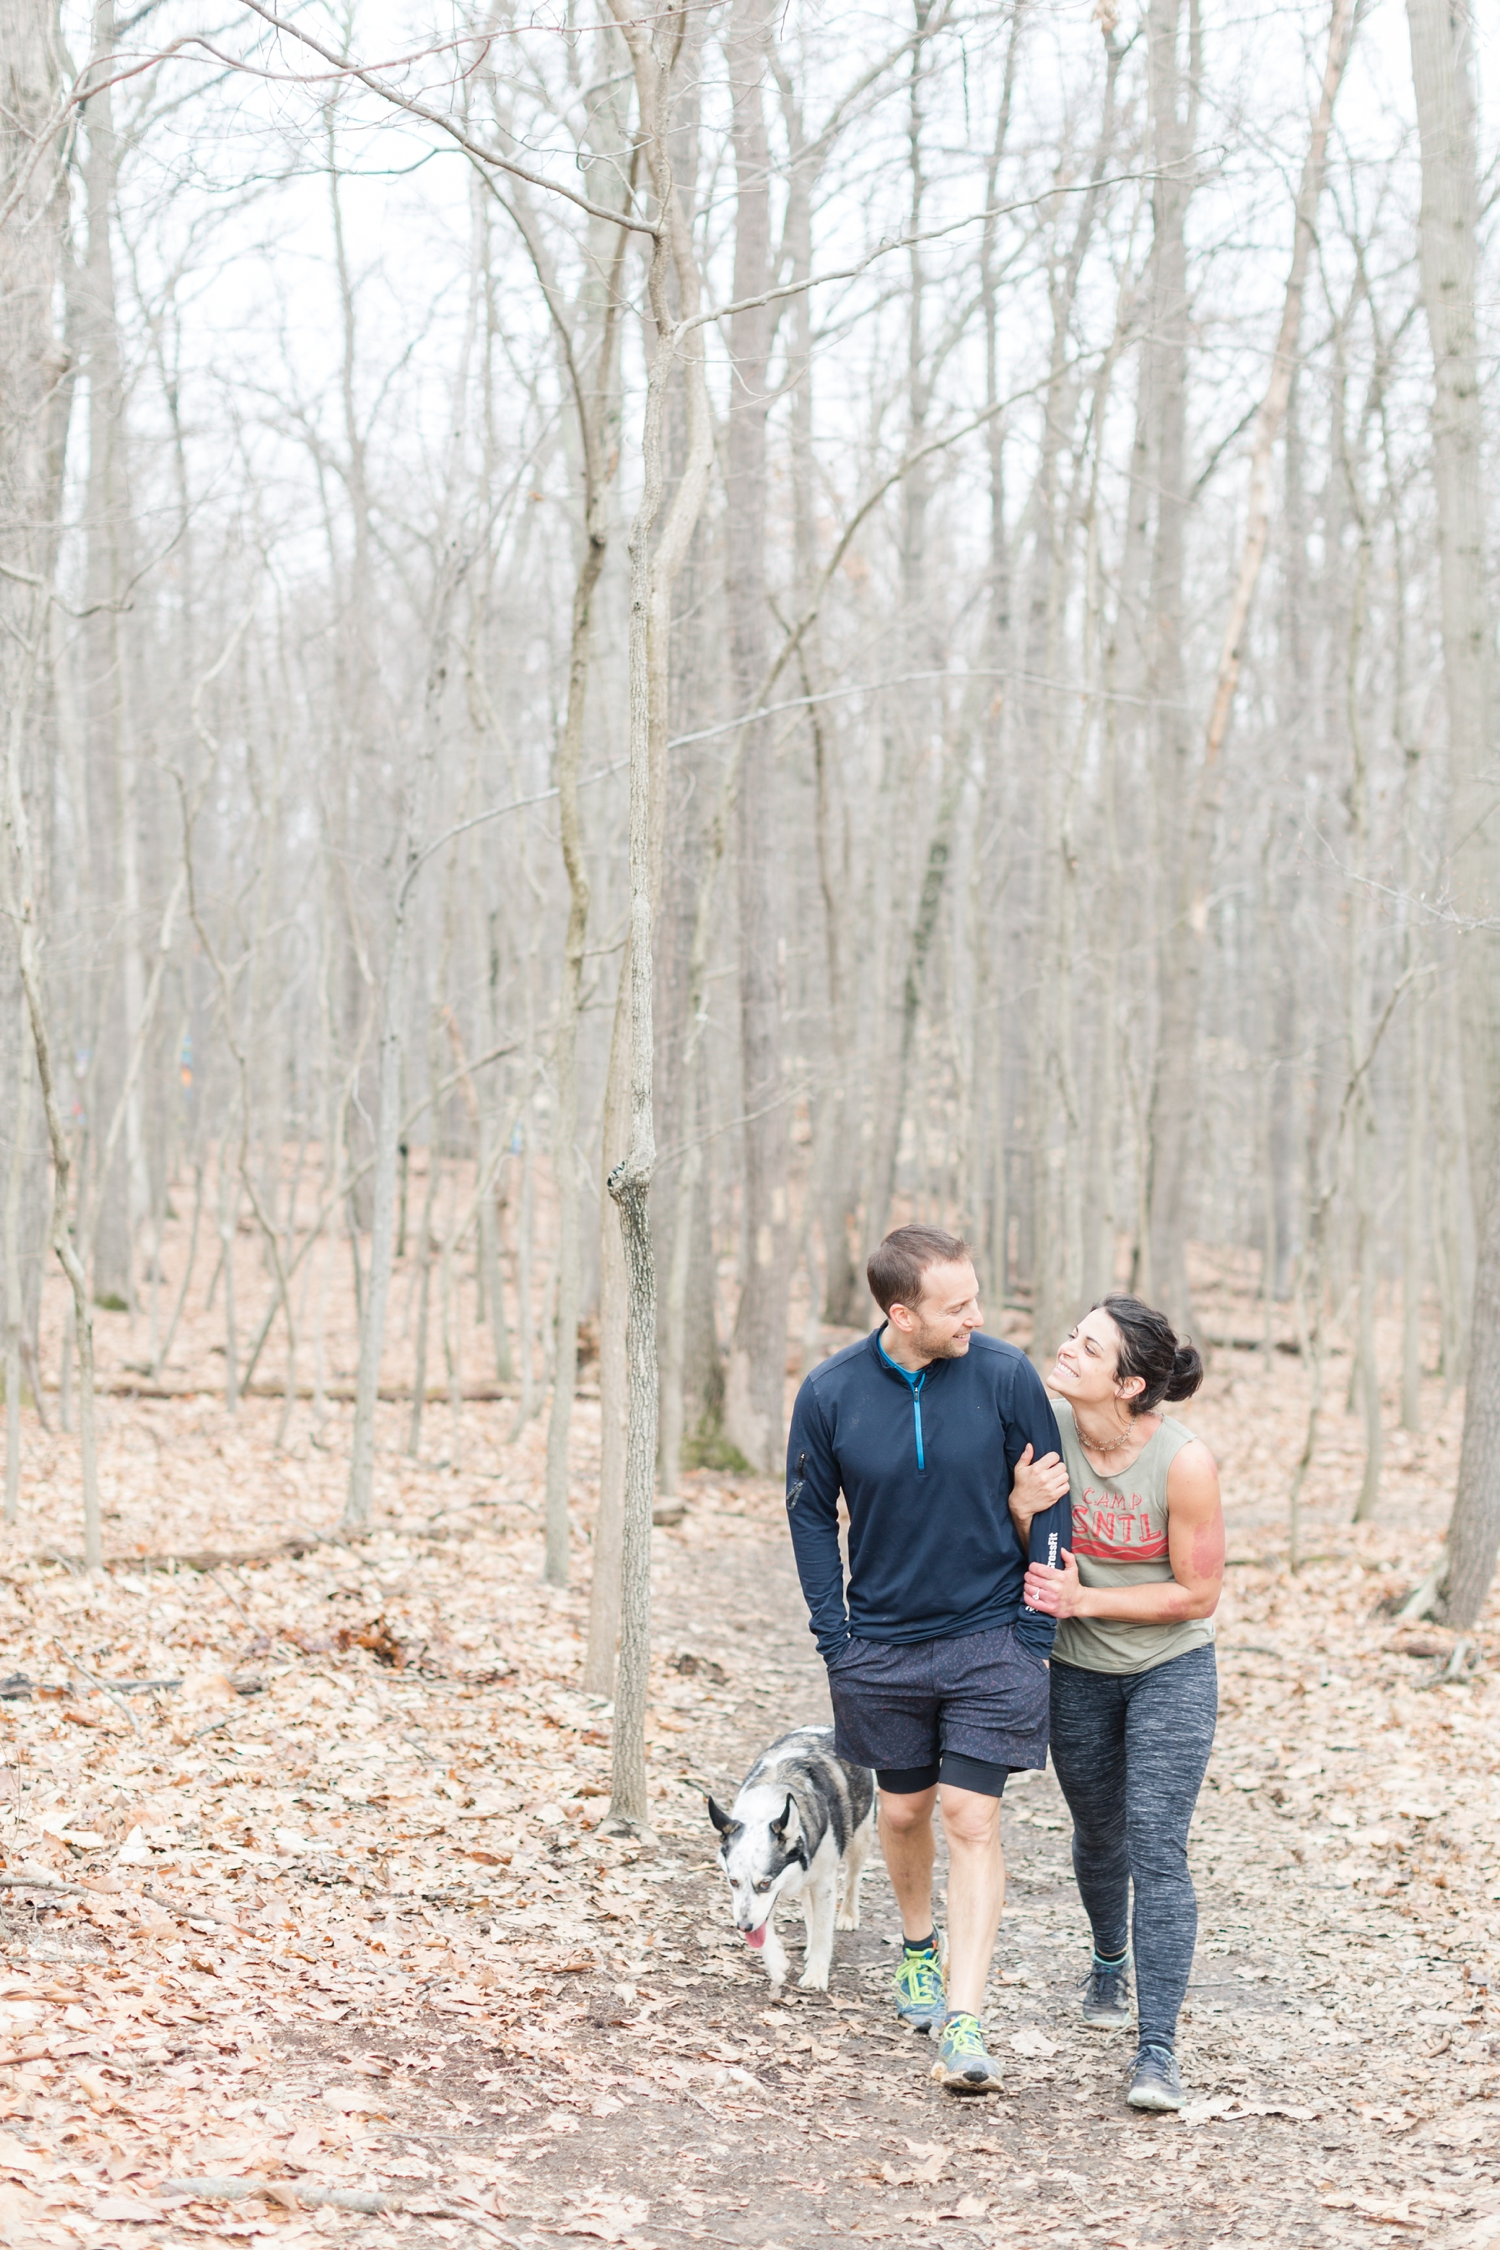 Matty & Angel Proposal Engagement-193_baltimore-maryland-proposal-and-engagement-photographer-oregon-ridge-engagement-anna-grace-photography-photo.jpg